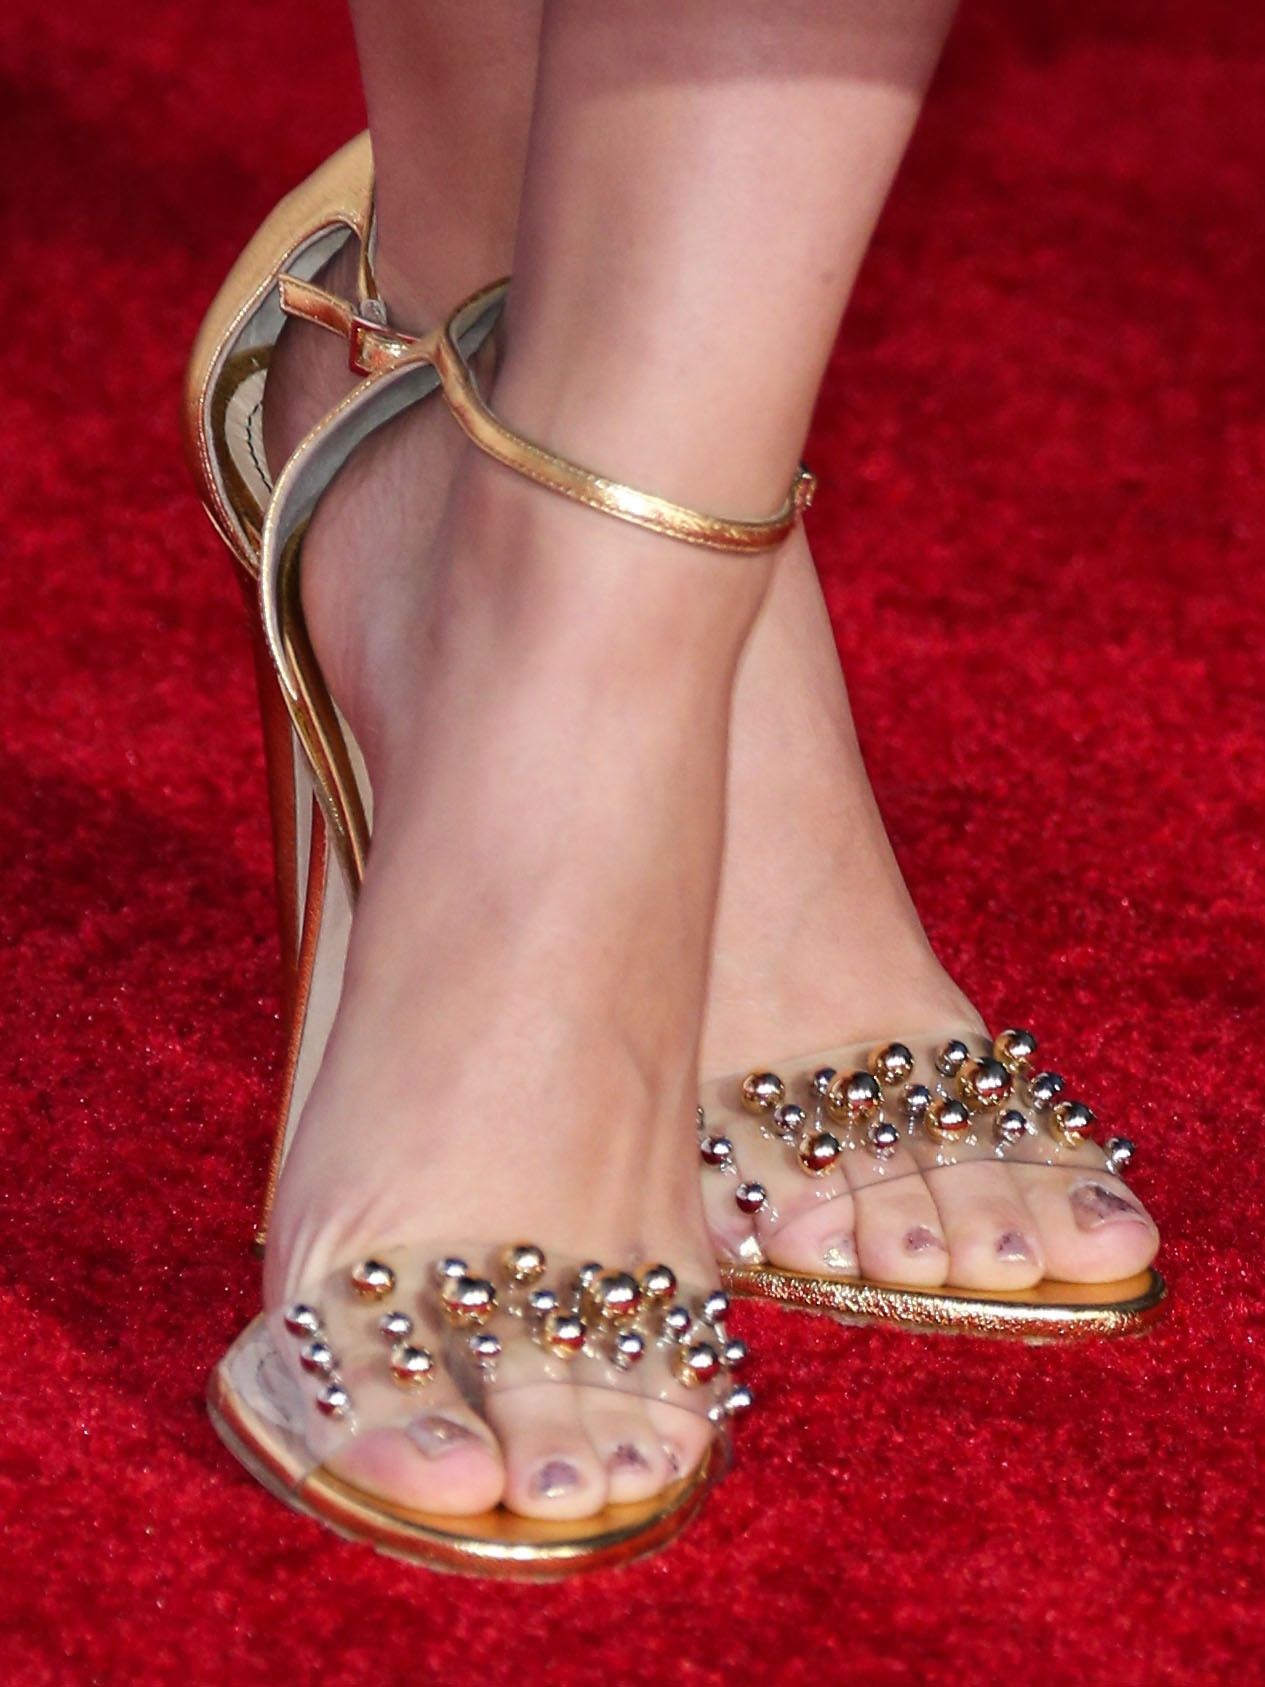 Friday Feet And My 3 Top Pins On Pinterest This Week